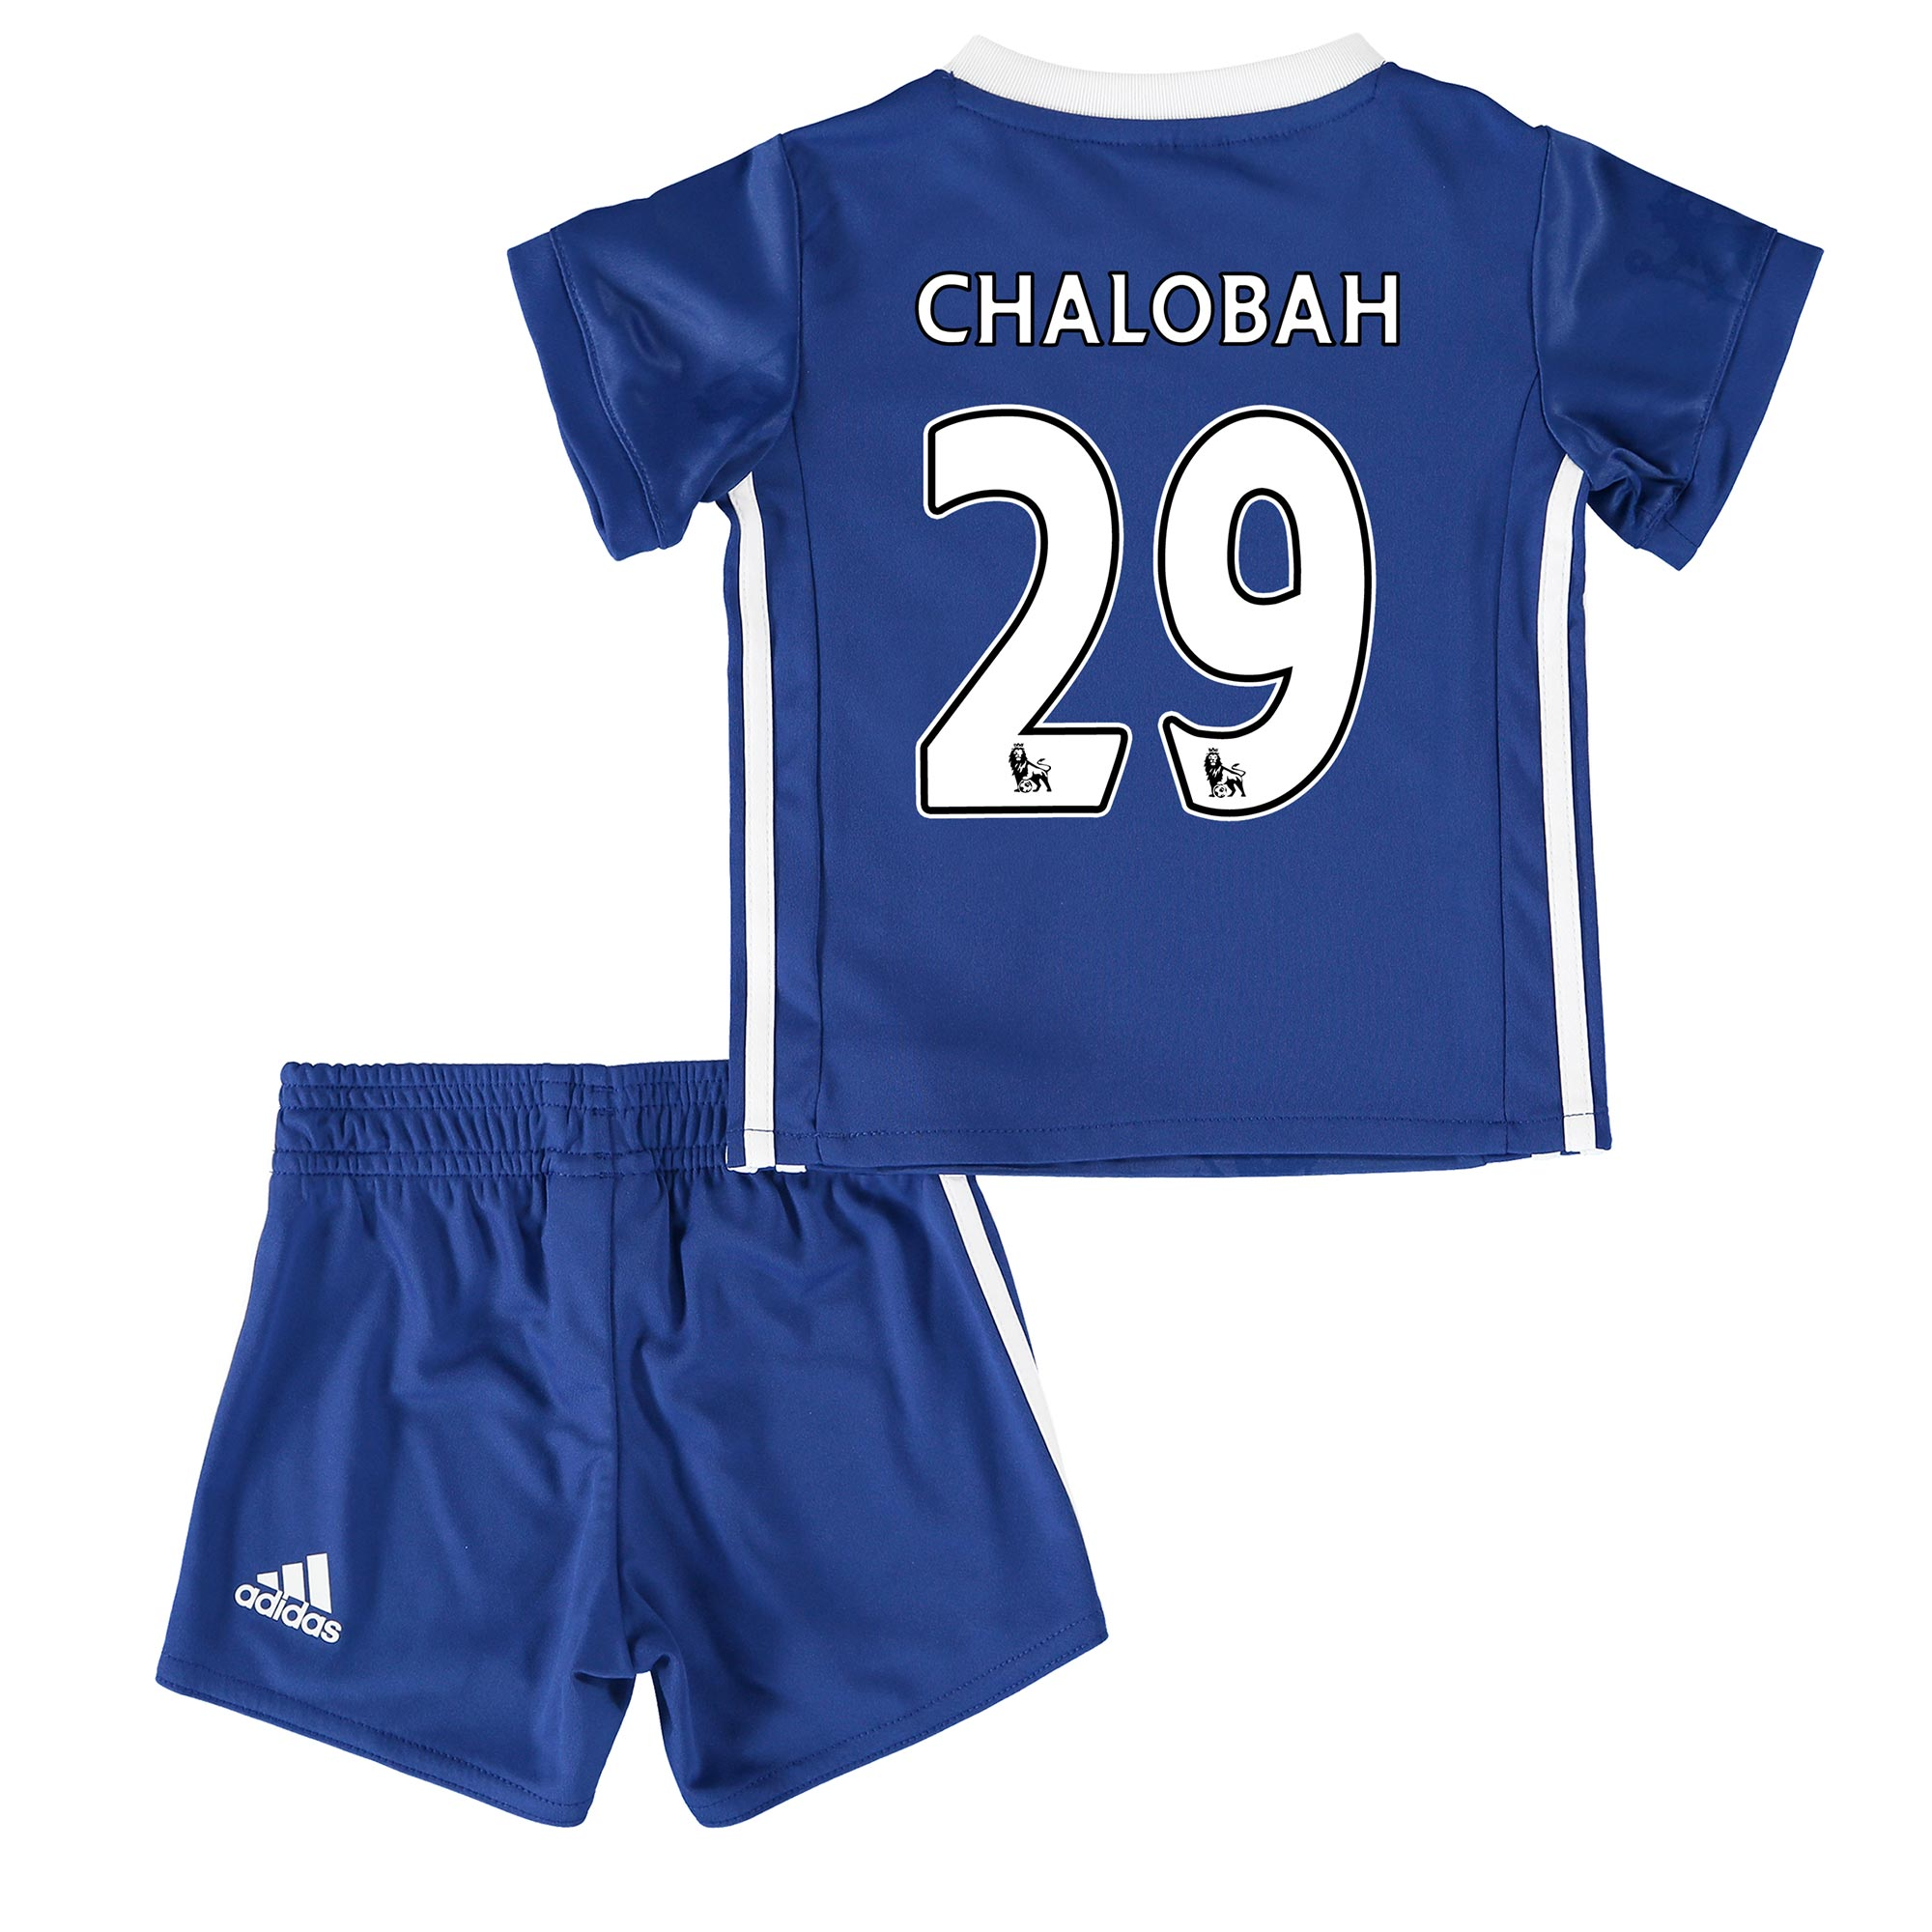 Chelsea Home Baby Kit 2016-17 with Chalobah 29 printing